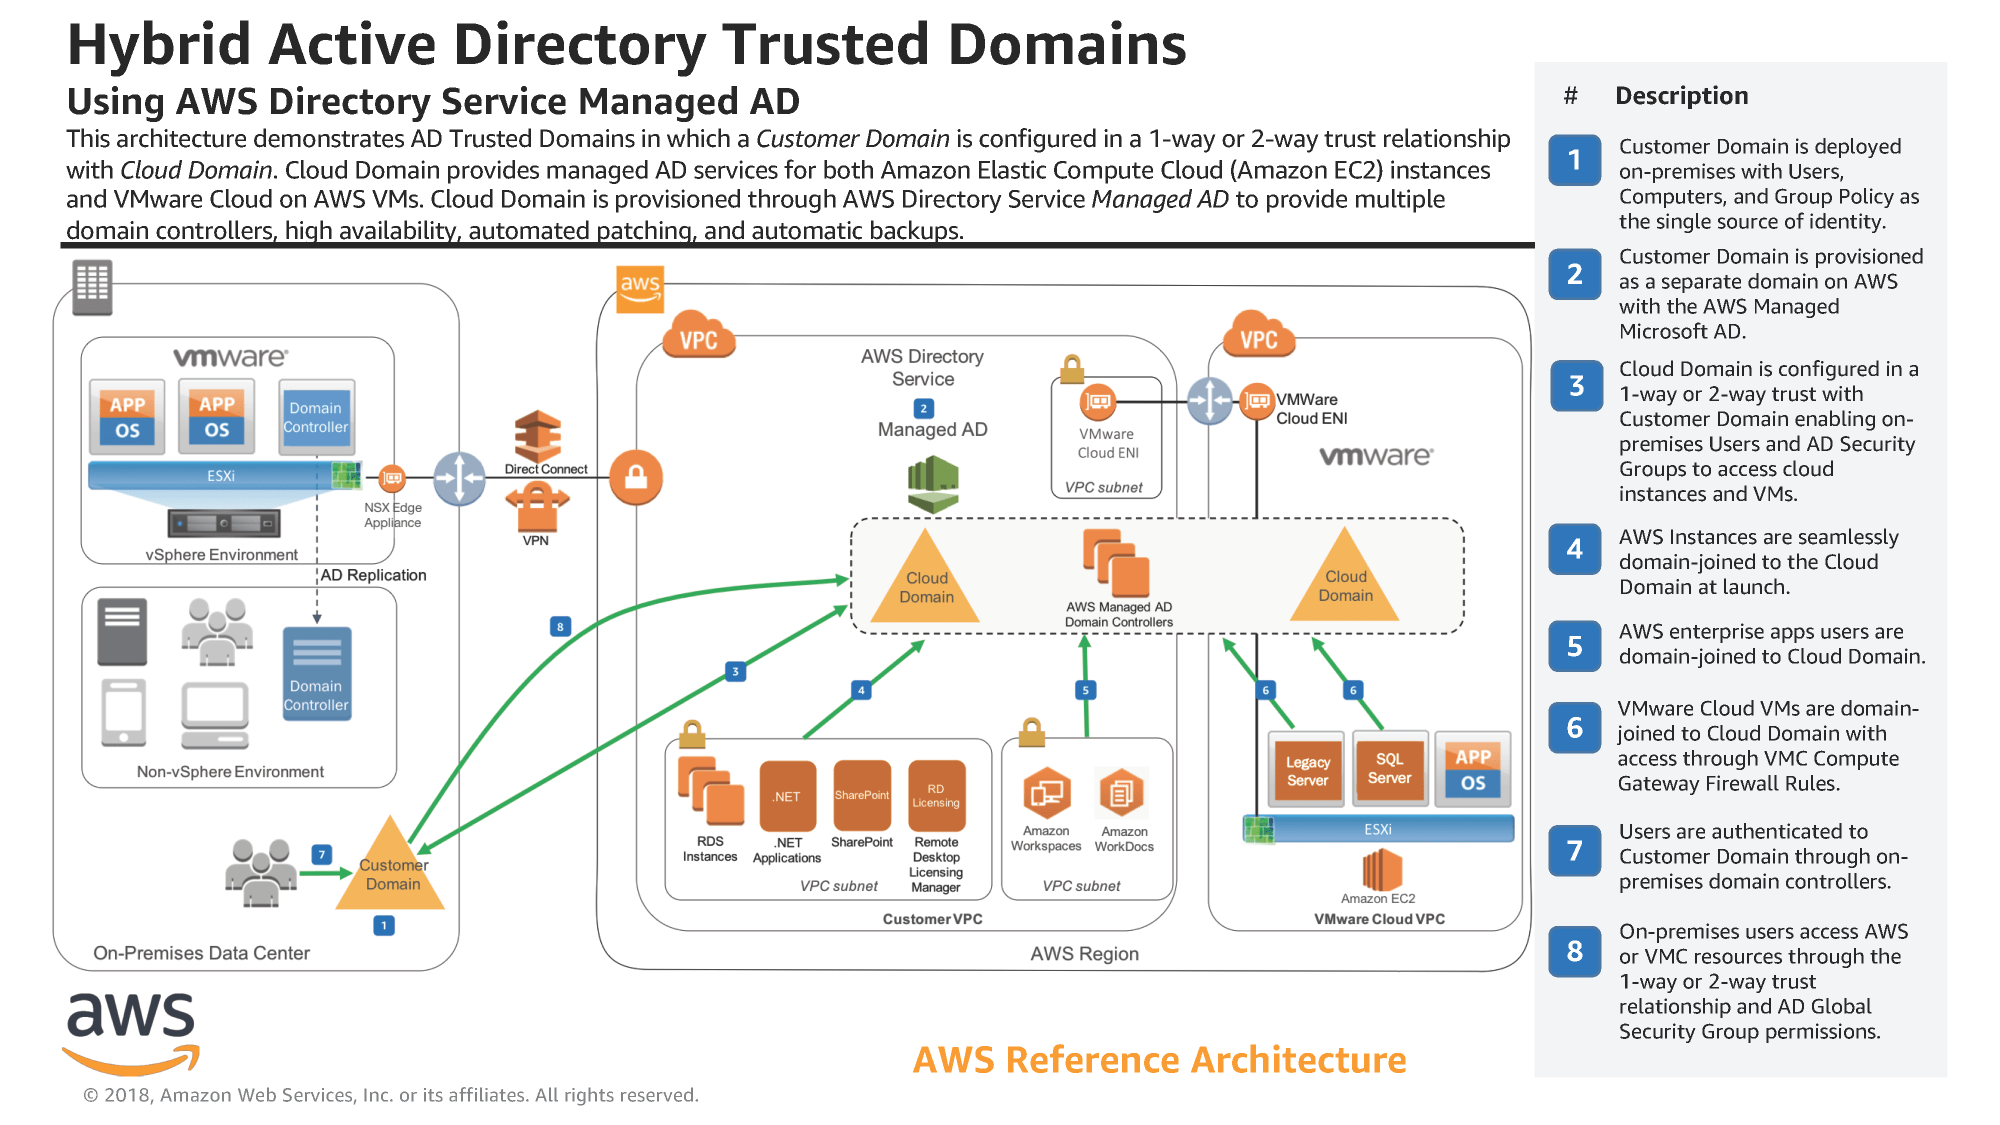 hight resolution of aws reference architecture hybrid active directory trusted domains